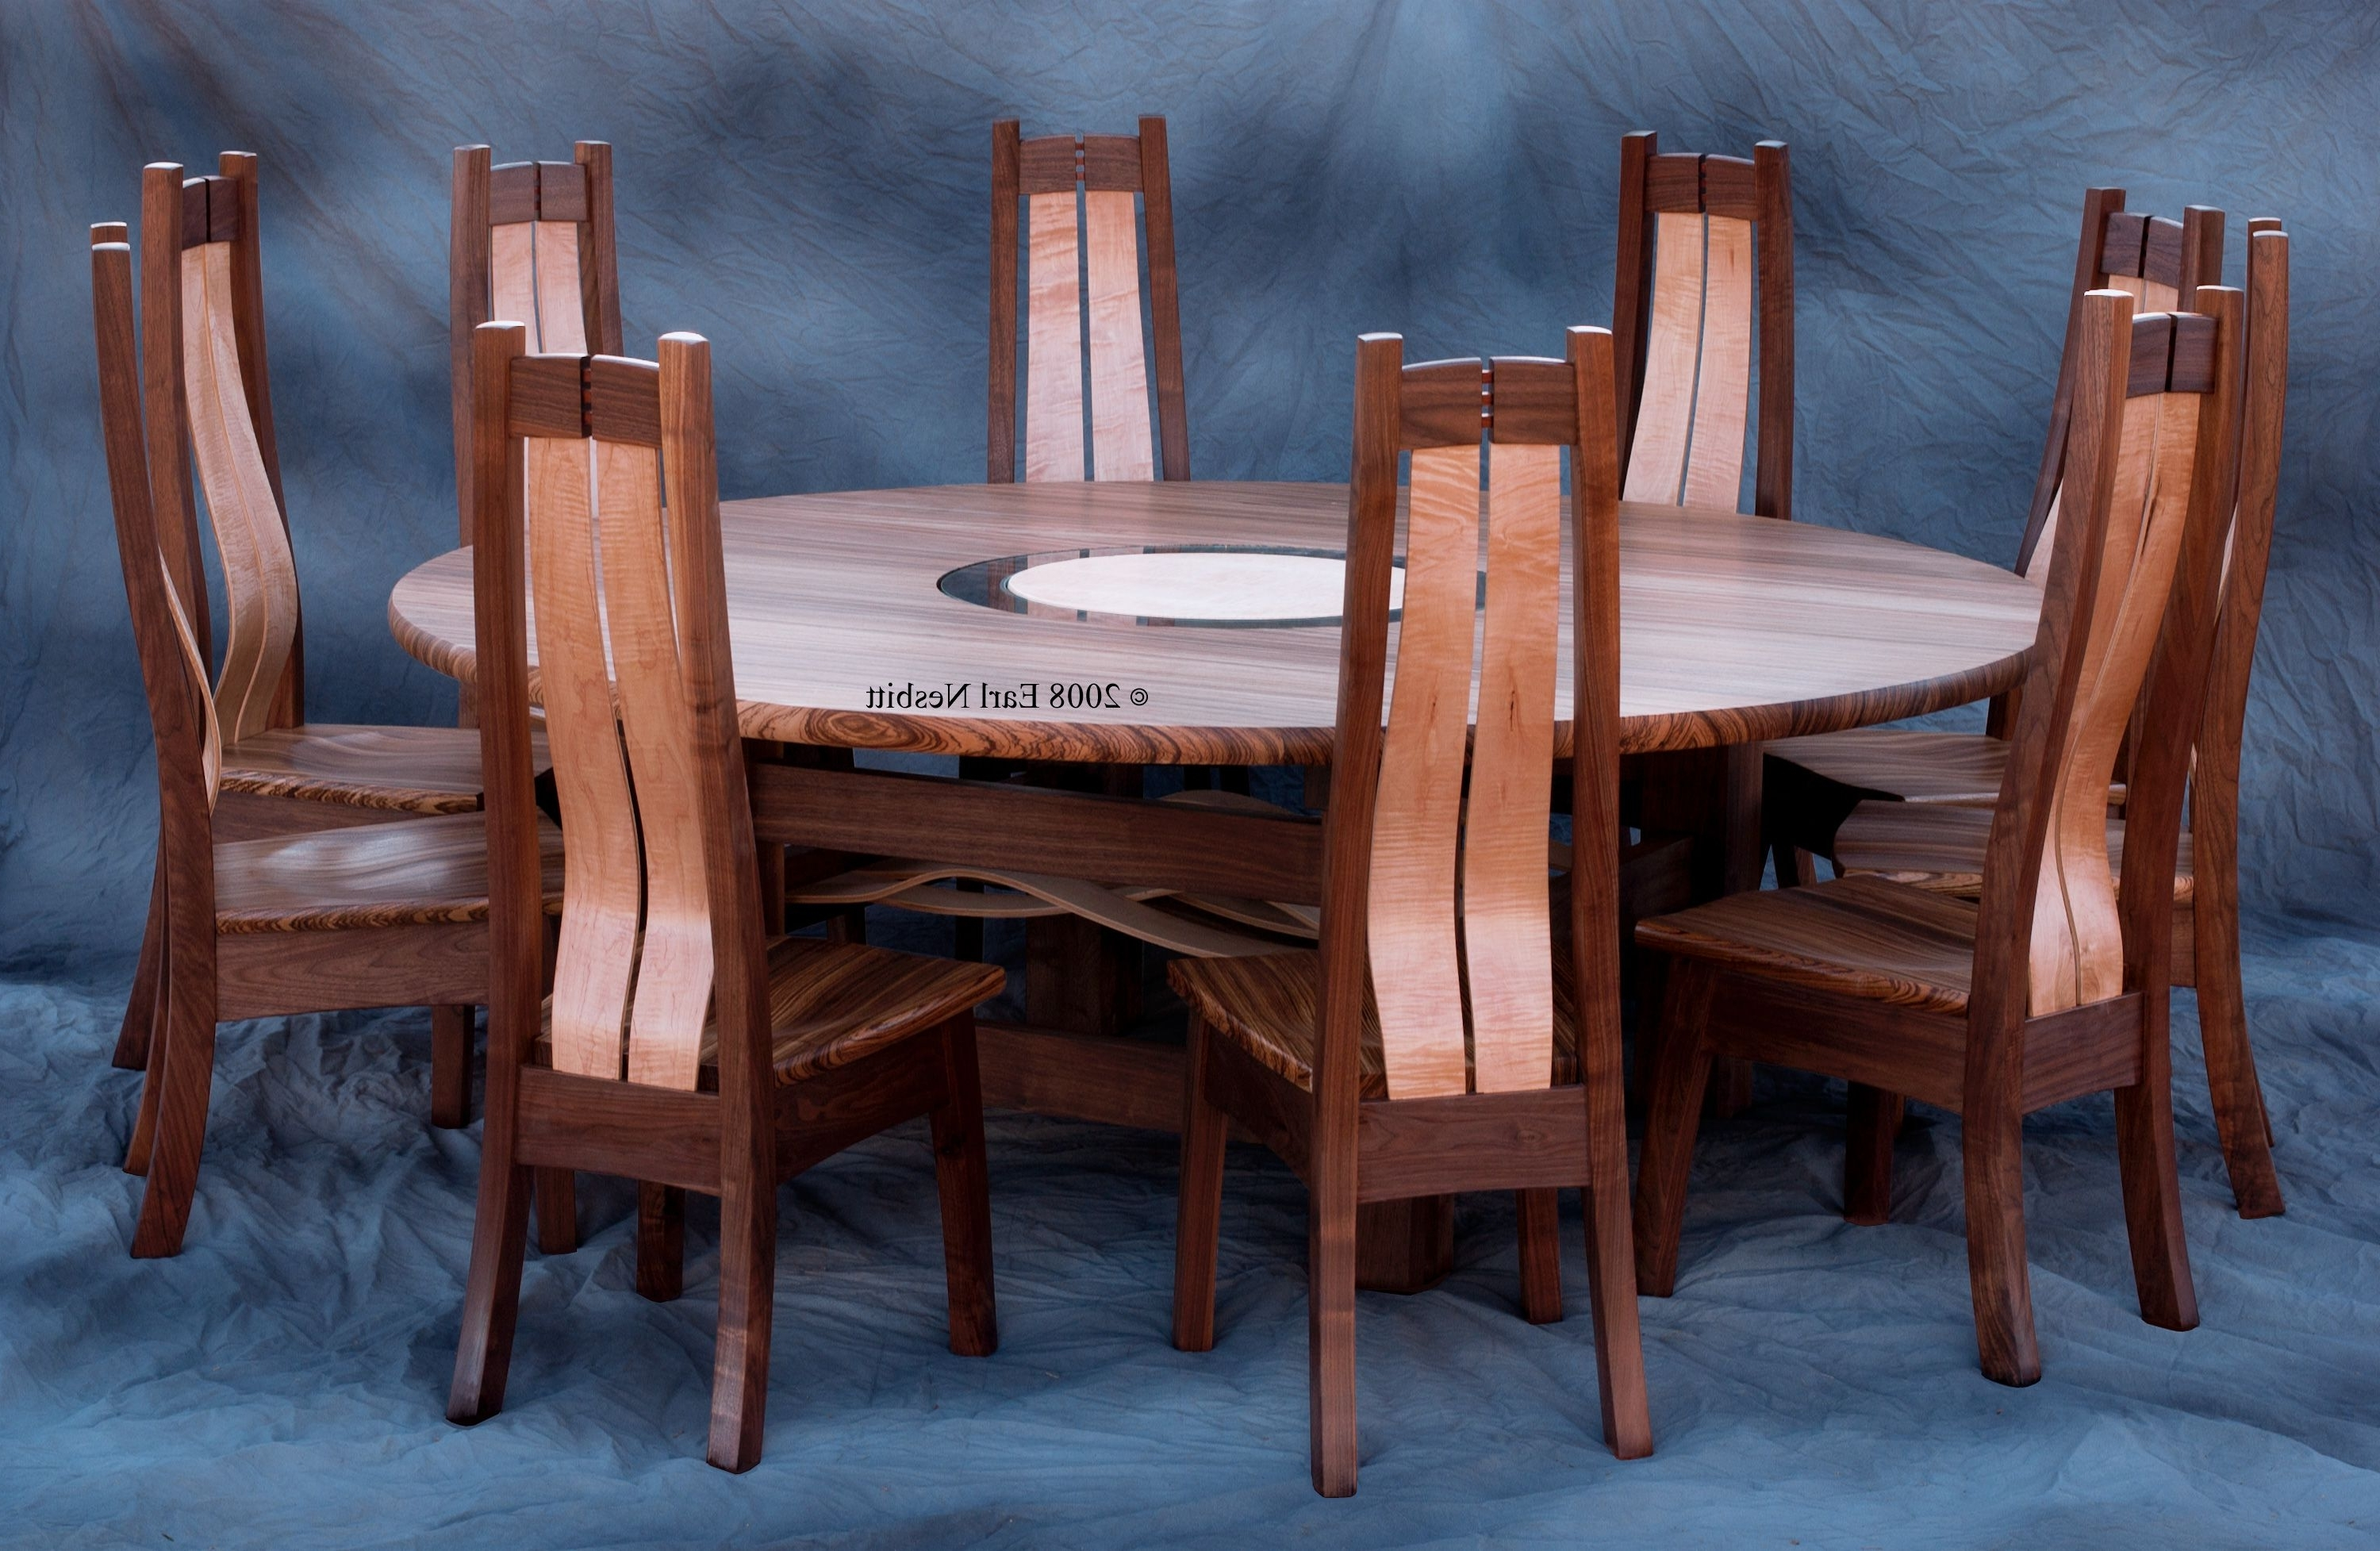 Fashionable Handmade Round Dining Table Or Conference Table With 10 Chairs In Dining Table And 10 Chairs (View 17 of 25)